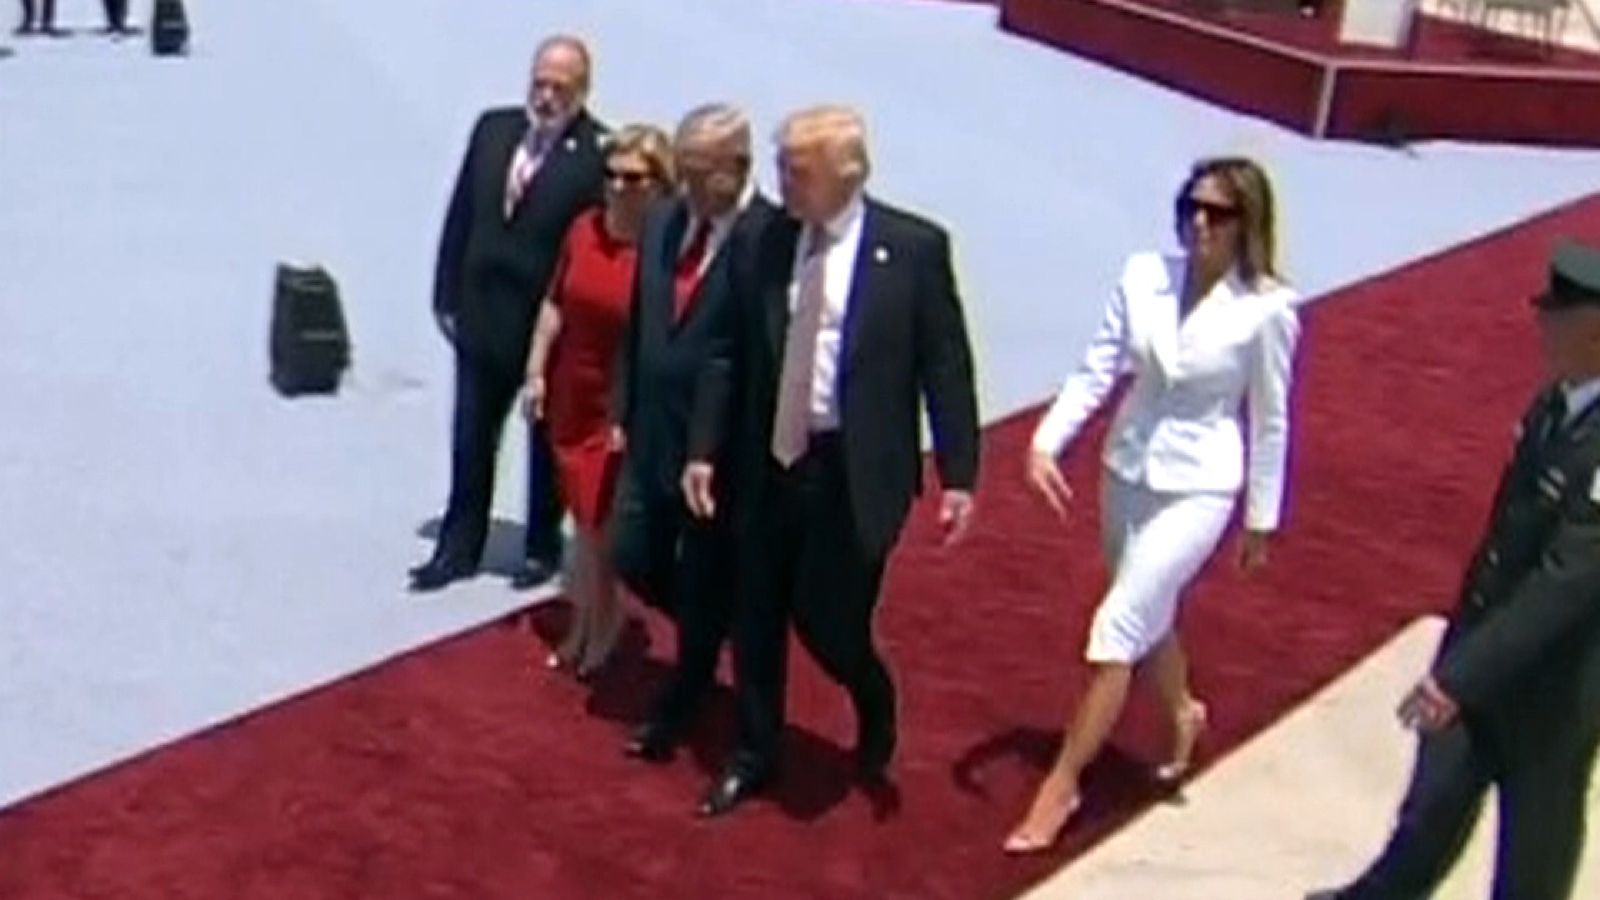 DOES MELANIA TRUMP SLAP HER HUSBAND'S HAND AWAY?